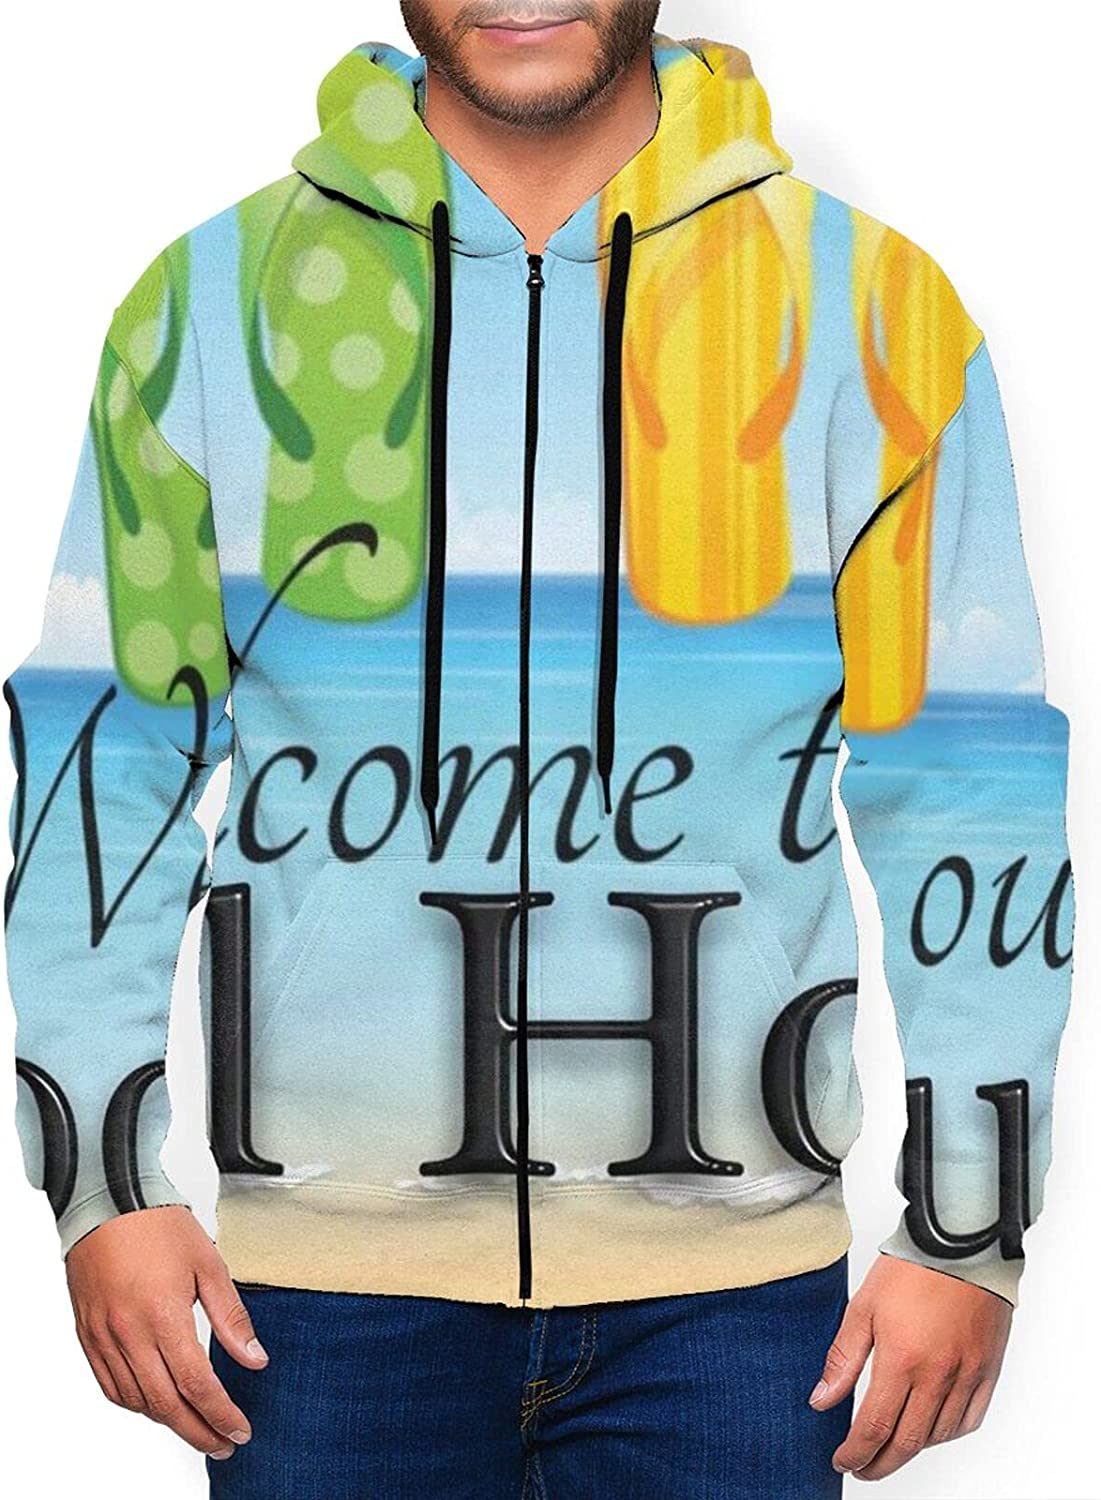 Super special price Welcome Popular brand in the world To Our Pool House Cotton Unisex 3D Digital Pri Realistic